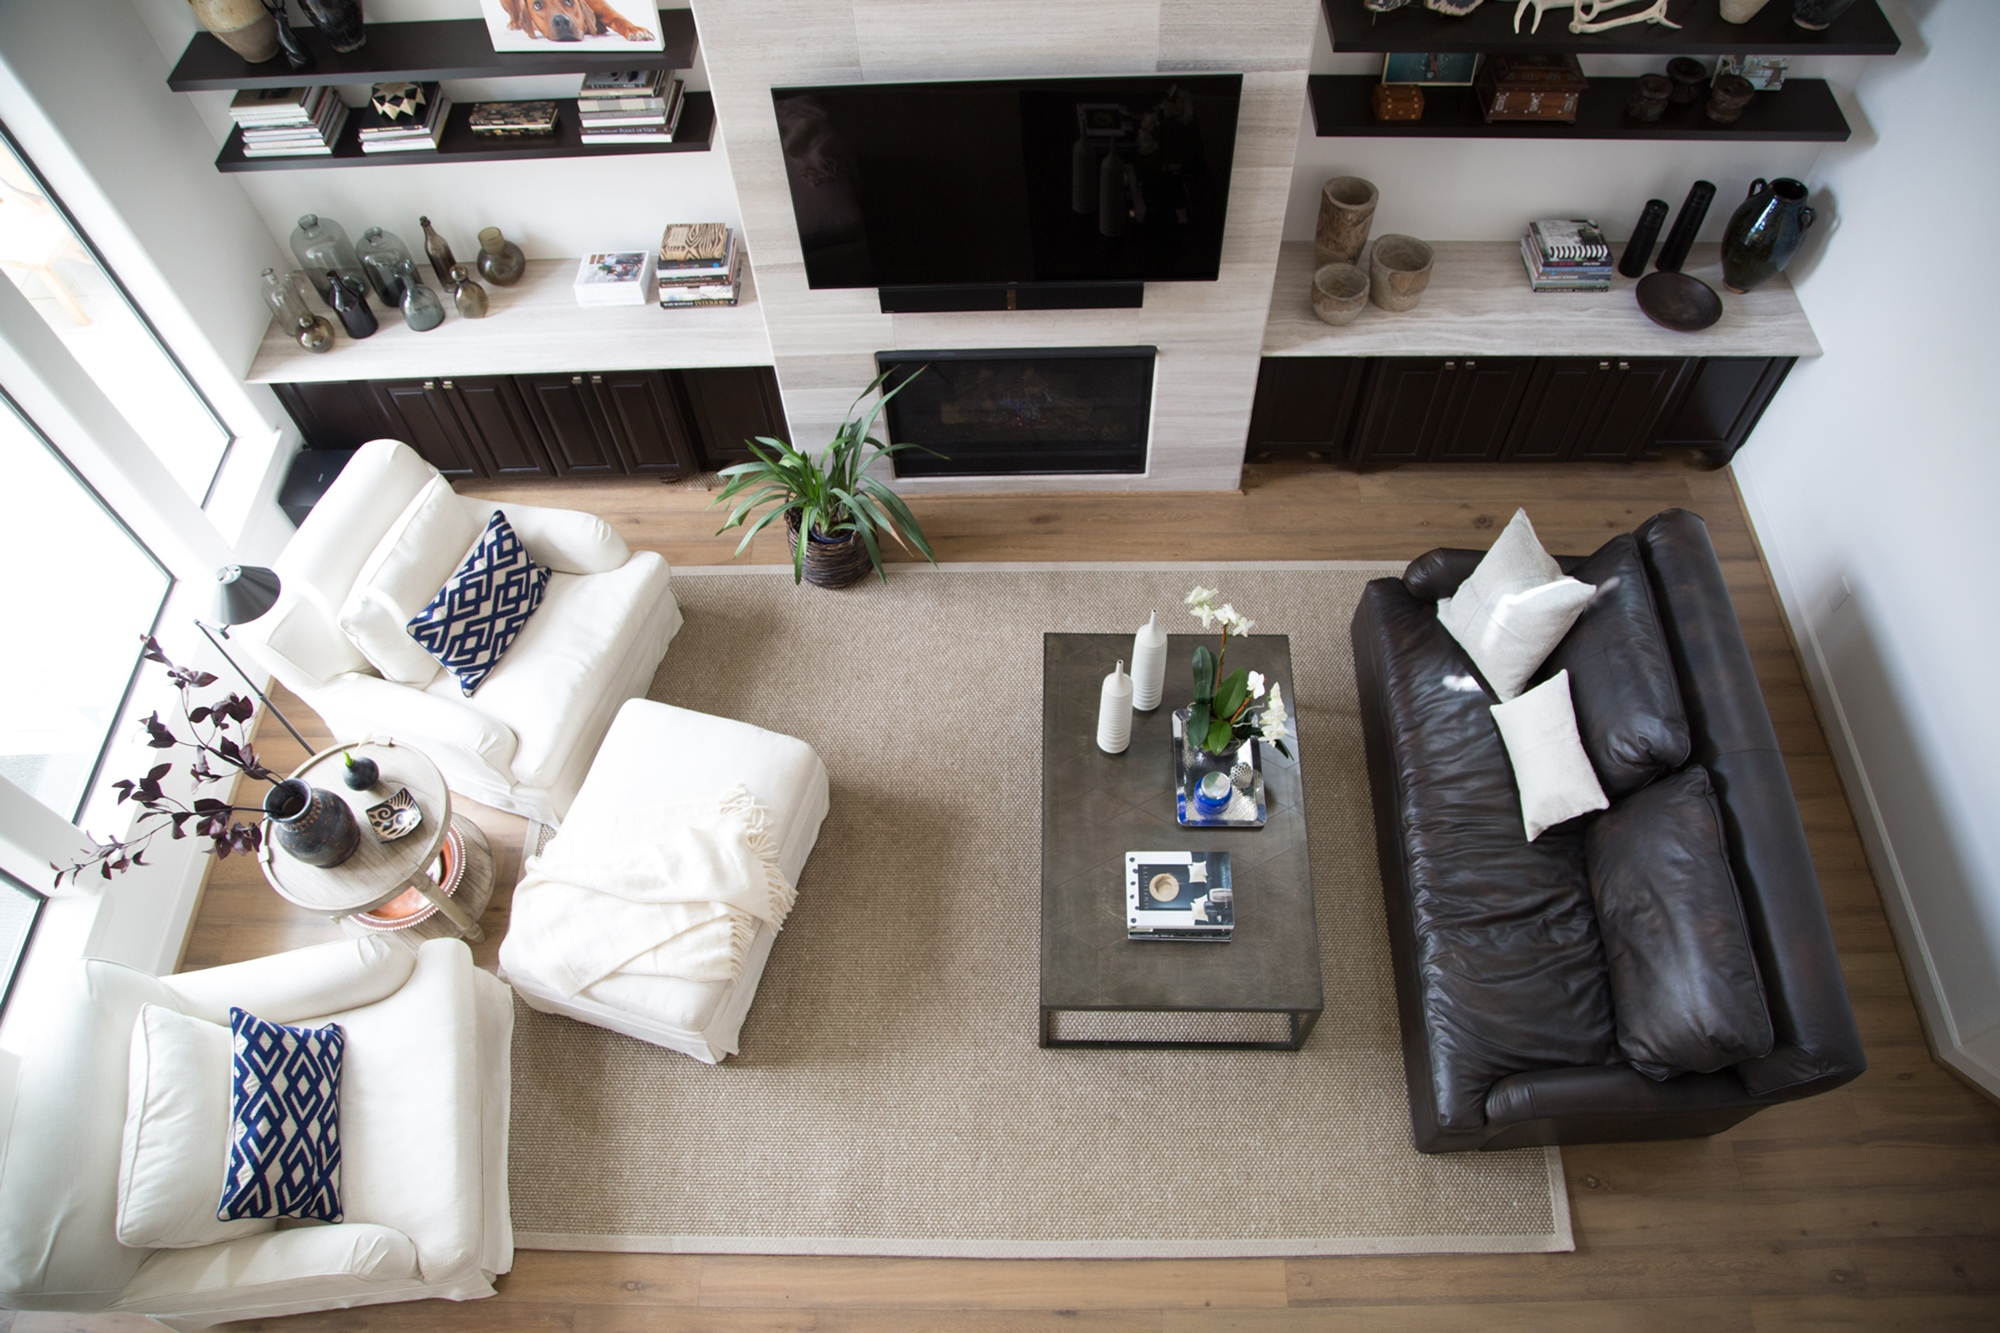 living room remodel; chair; Ottomans; leather sofa; shelving; fireplace; coffee table | Interior Designer: Carla Aston / Photographer: Tori Aston